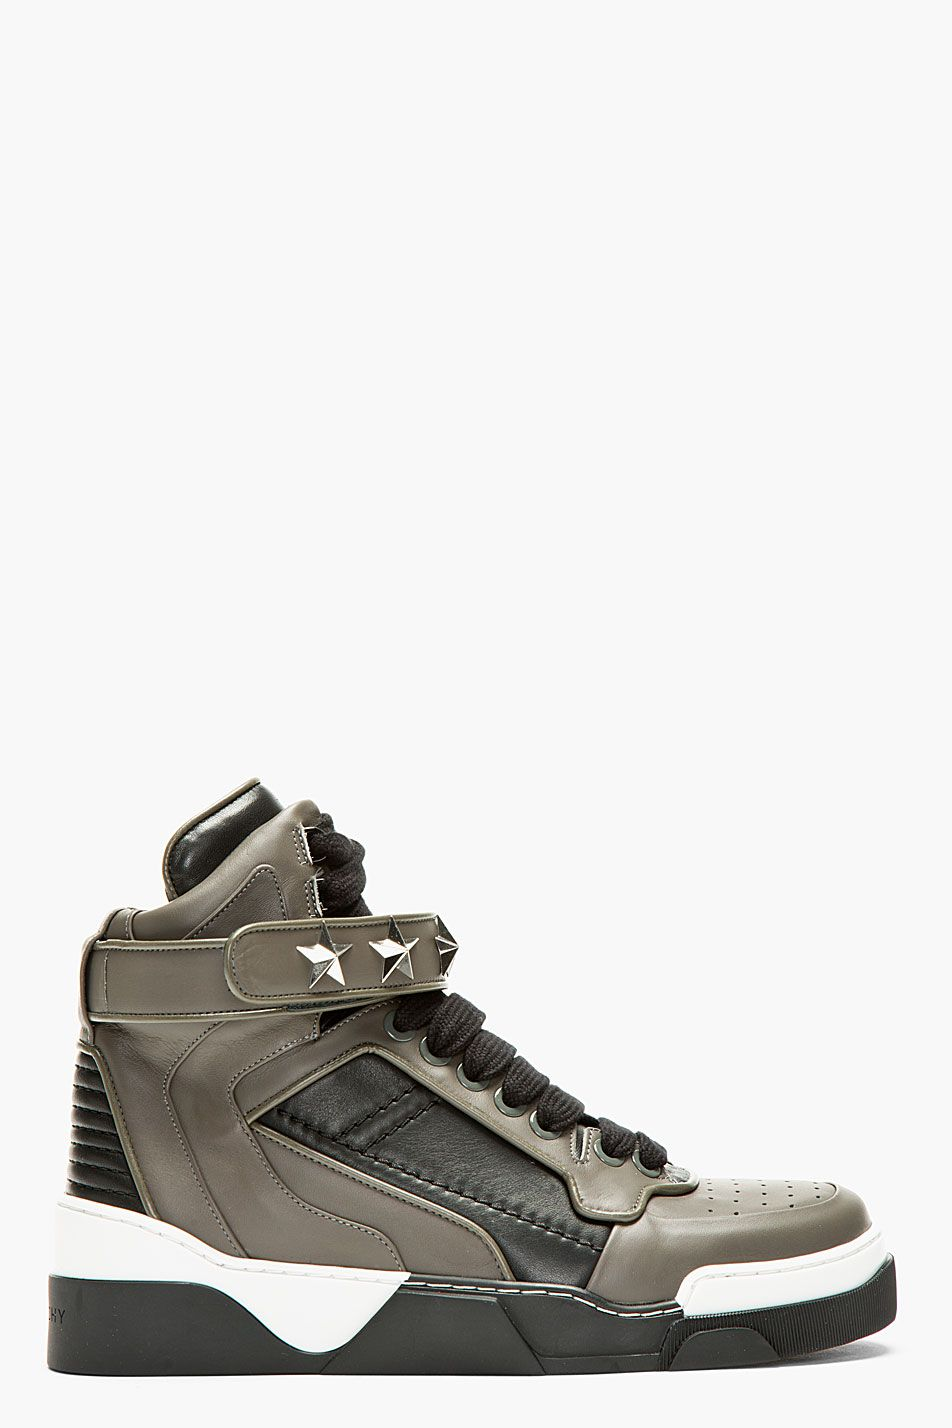 san francisco 5a314 26254 Givenchy Grey   Black Star Studded High Top Sneakers for men   SSENSE